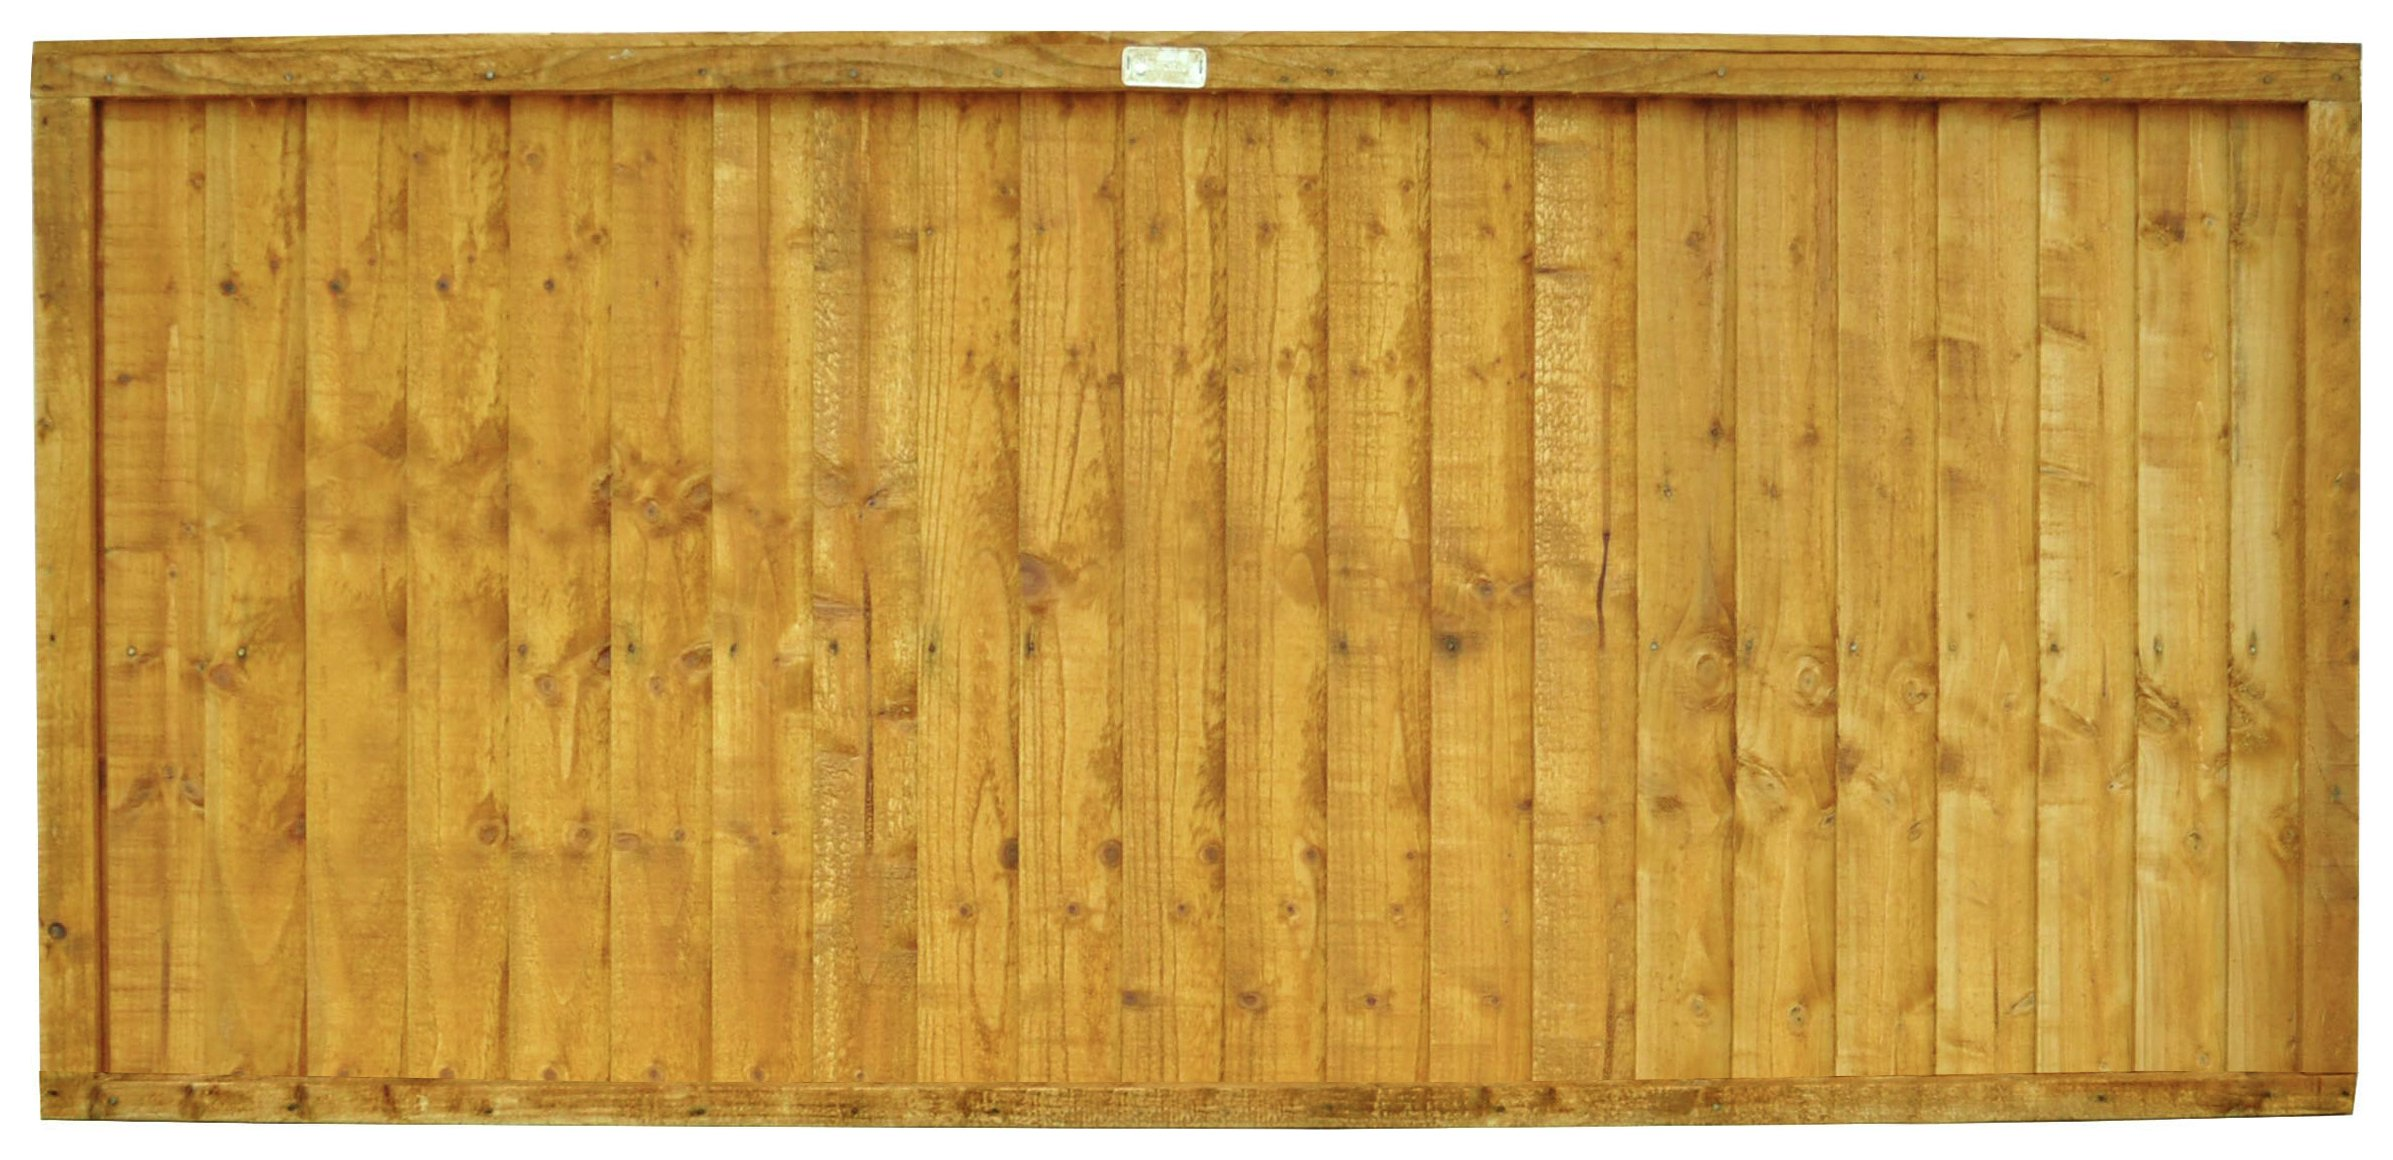 Image of Forest 0.9m Larchlap Closeboard Fence Panel - Pack of 3.